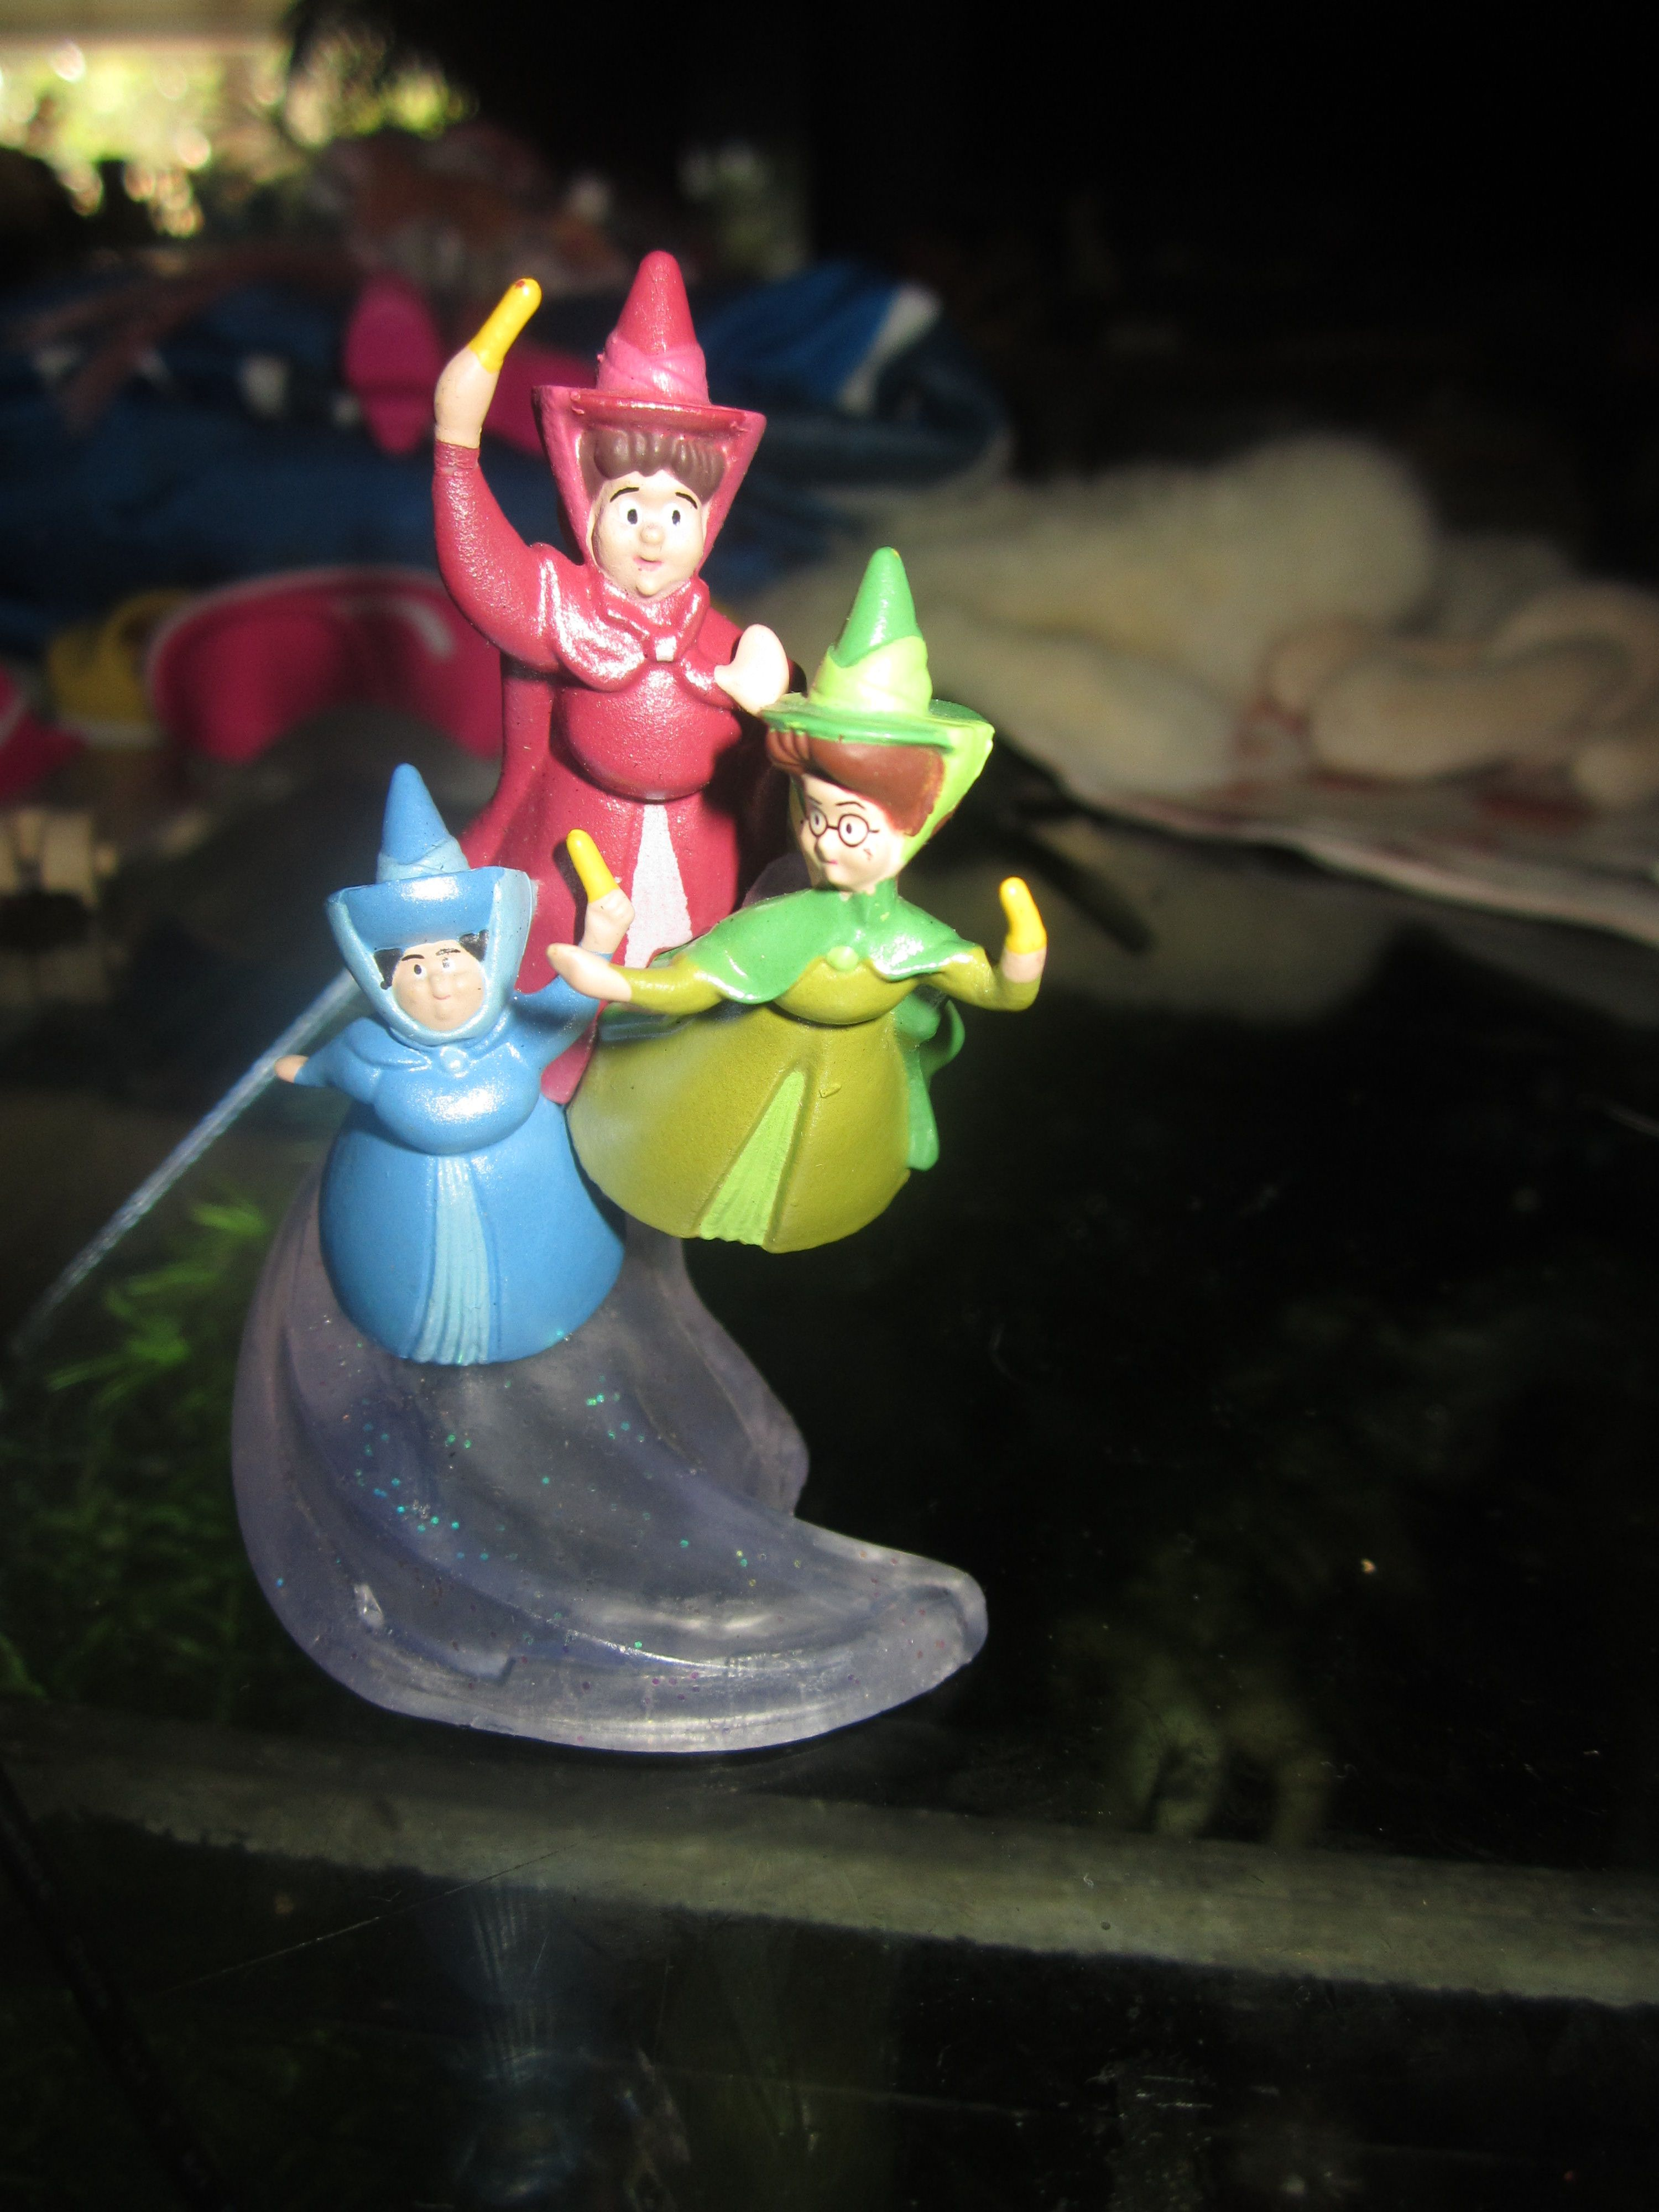 Walt Disney Sleeping Beauty Flora Fauna And Merryweather Are The